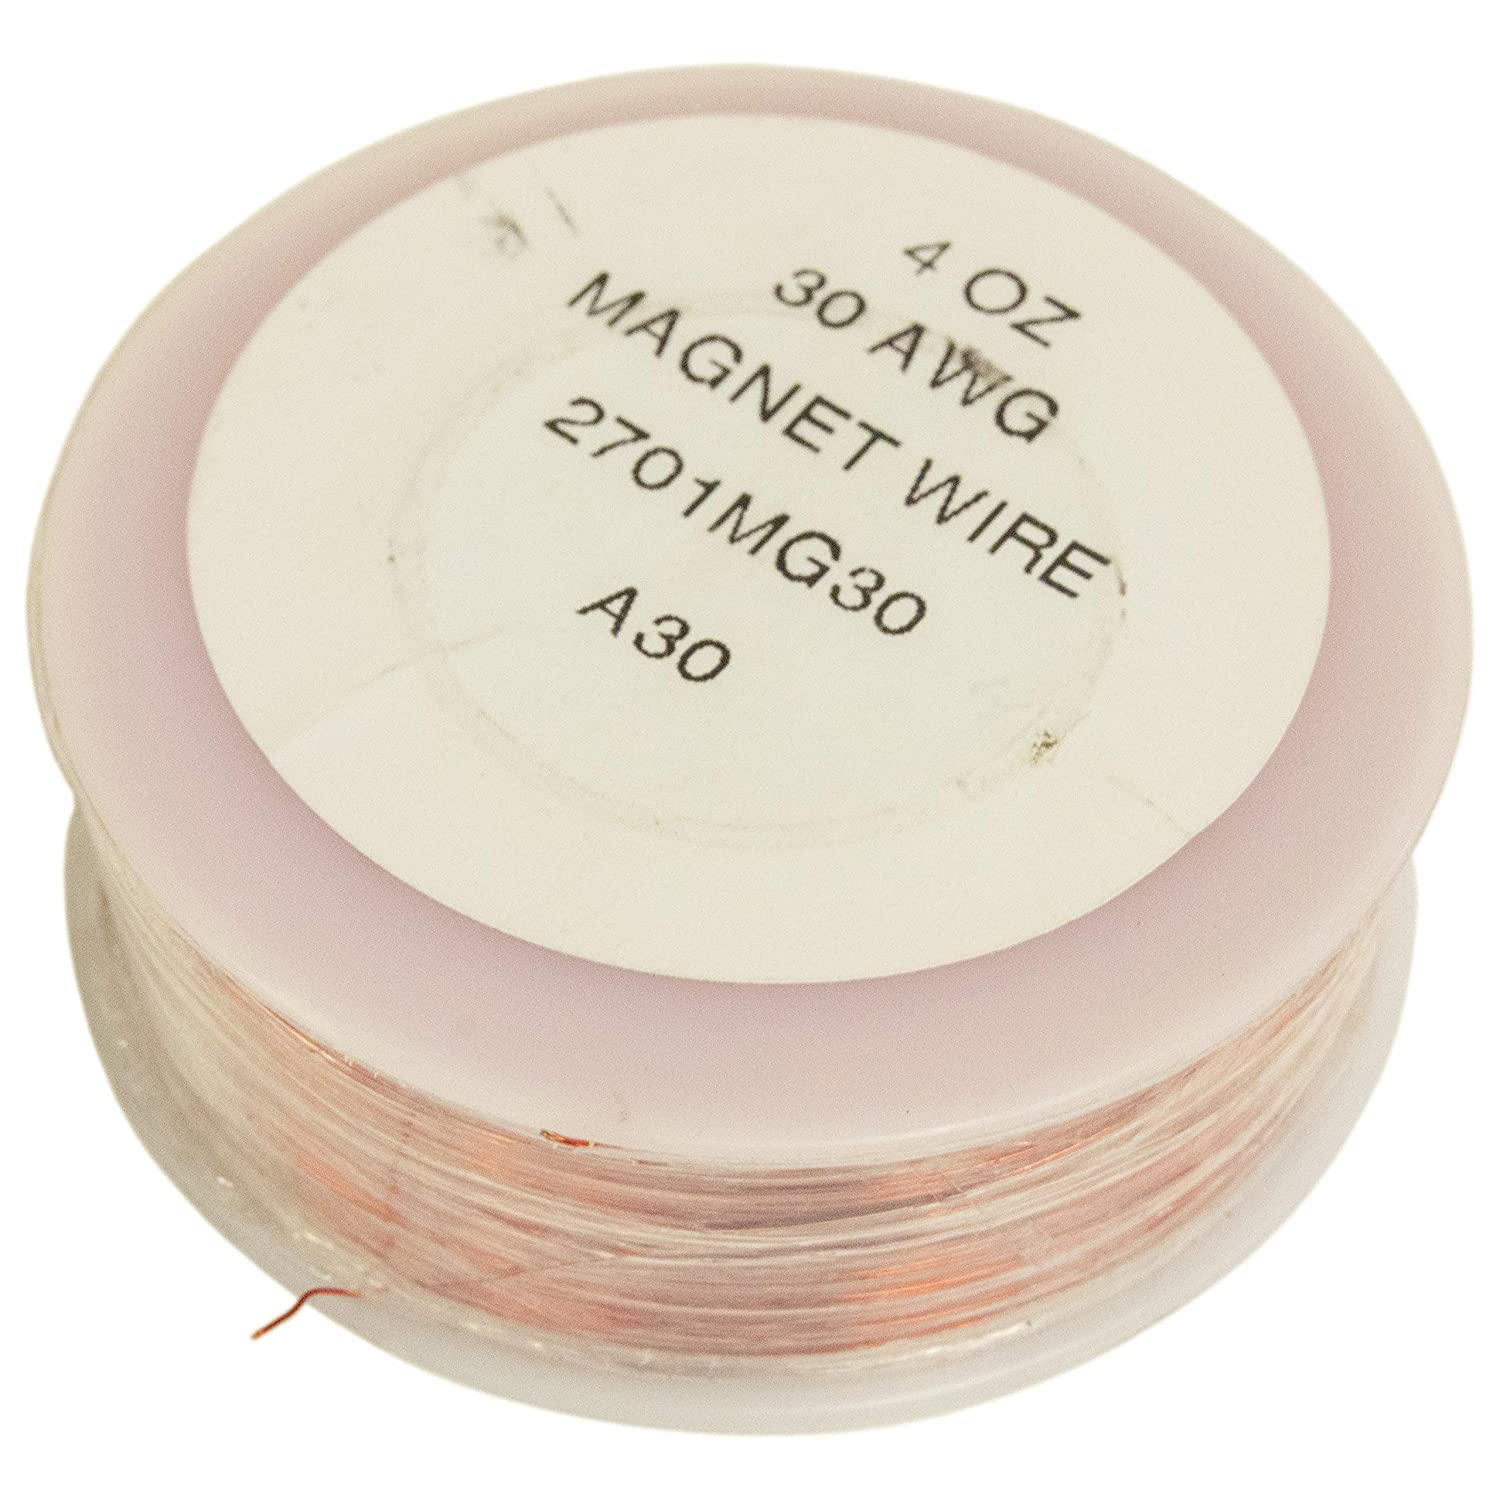 775 Foot 30 Gauge Copper Magnet Wire with Enamel Insulation (1/4 Pound) by Electronix Express